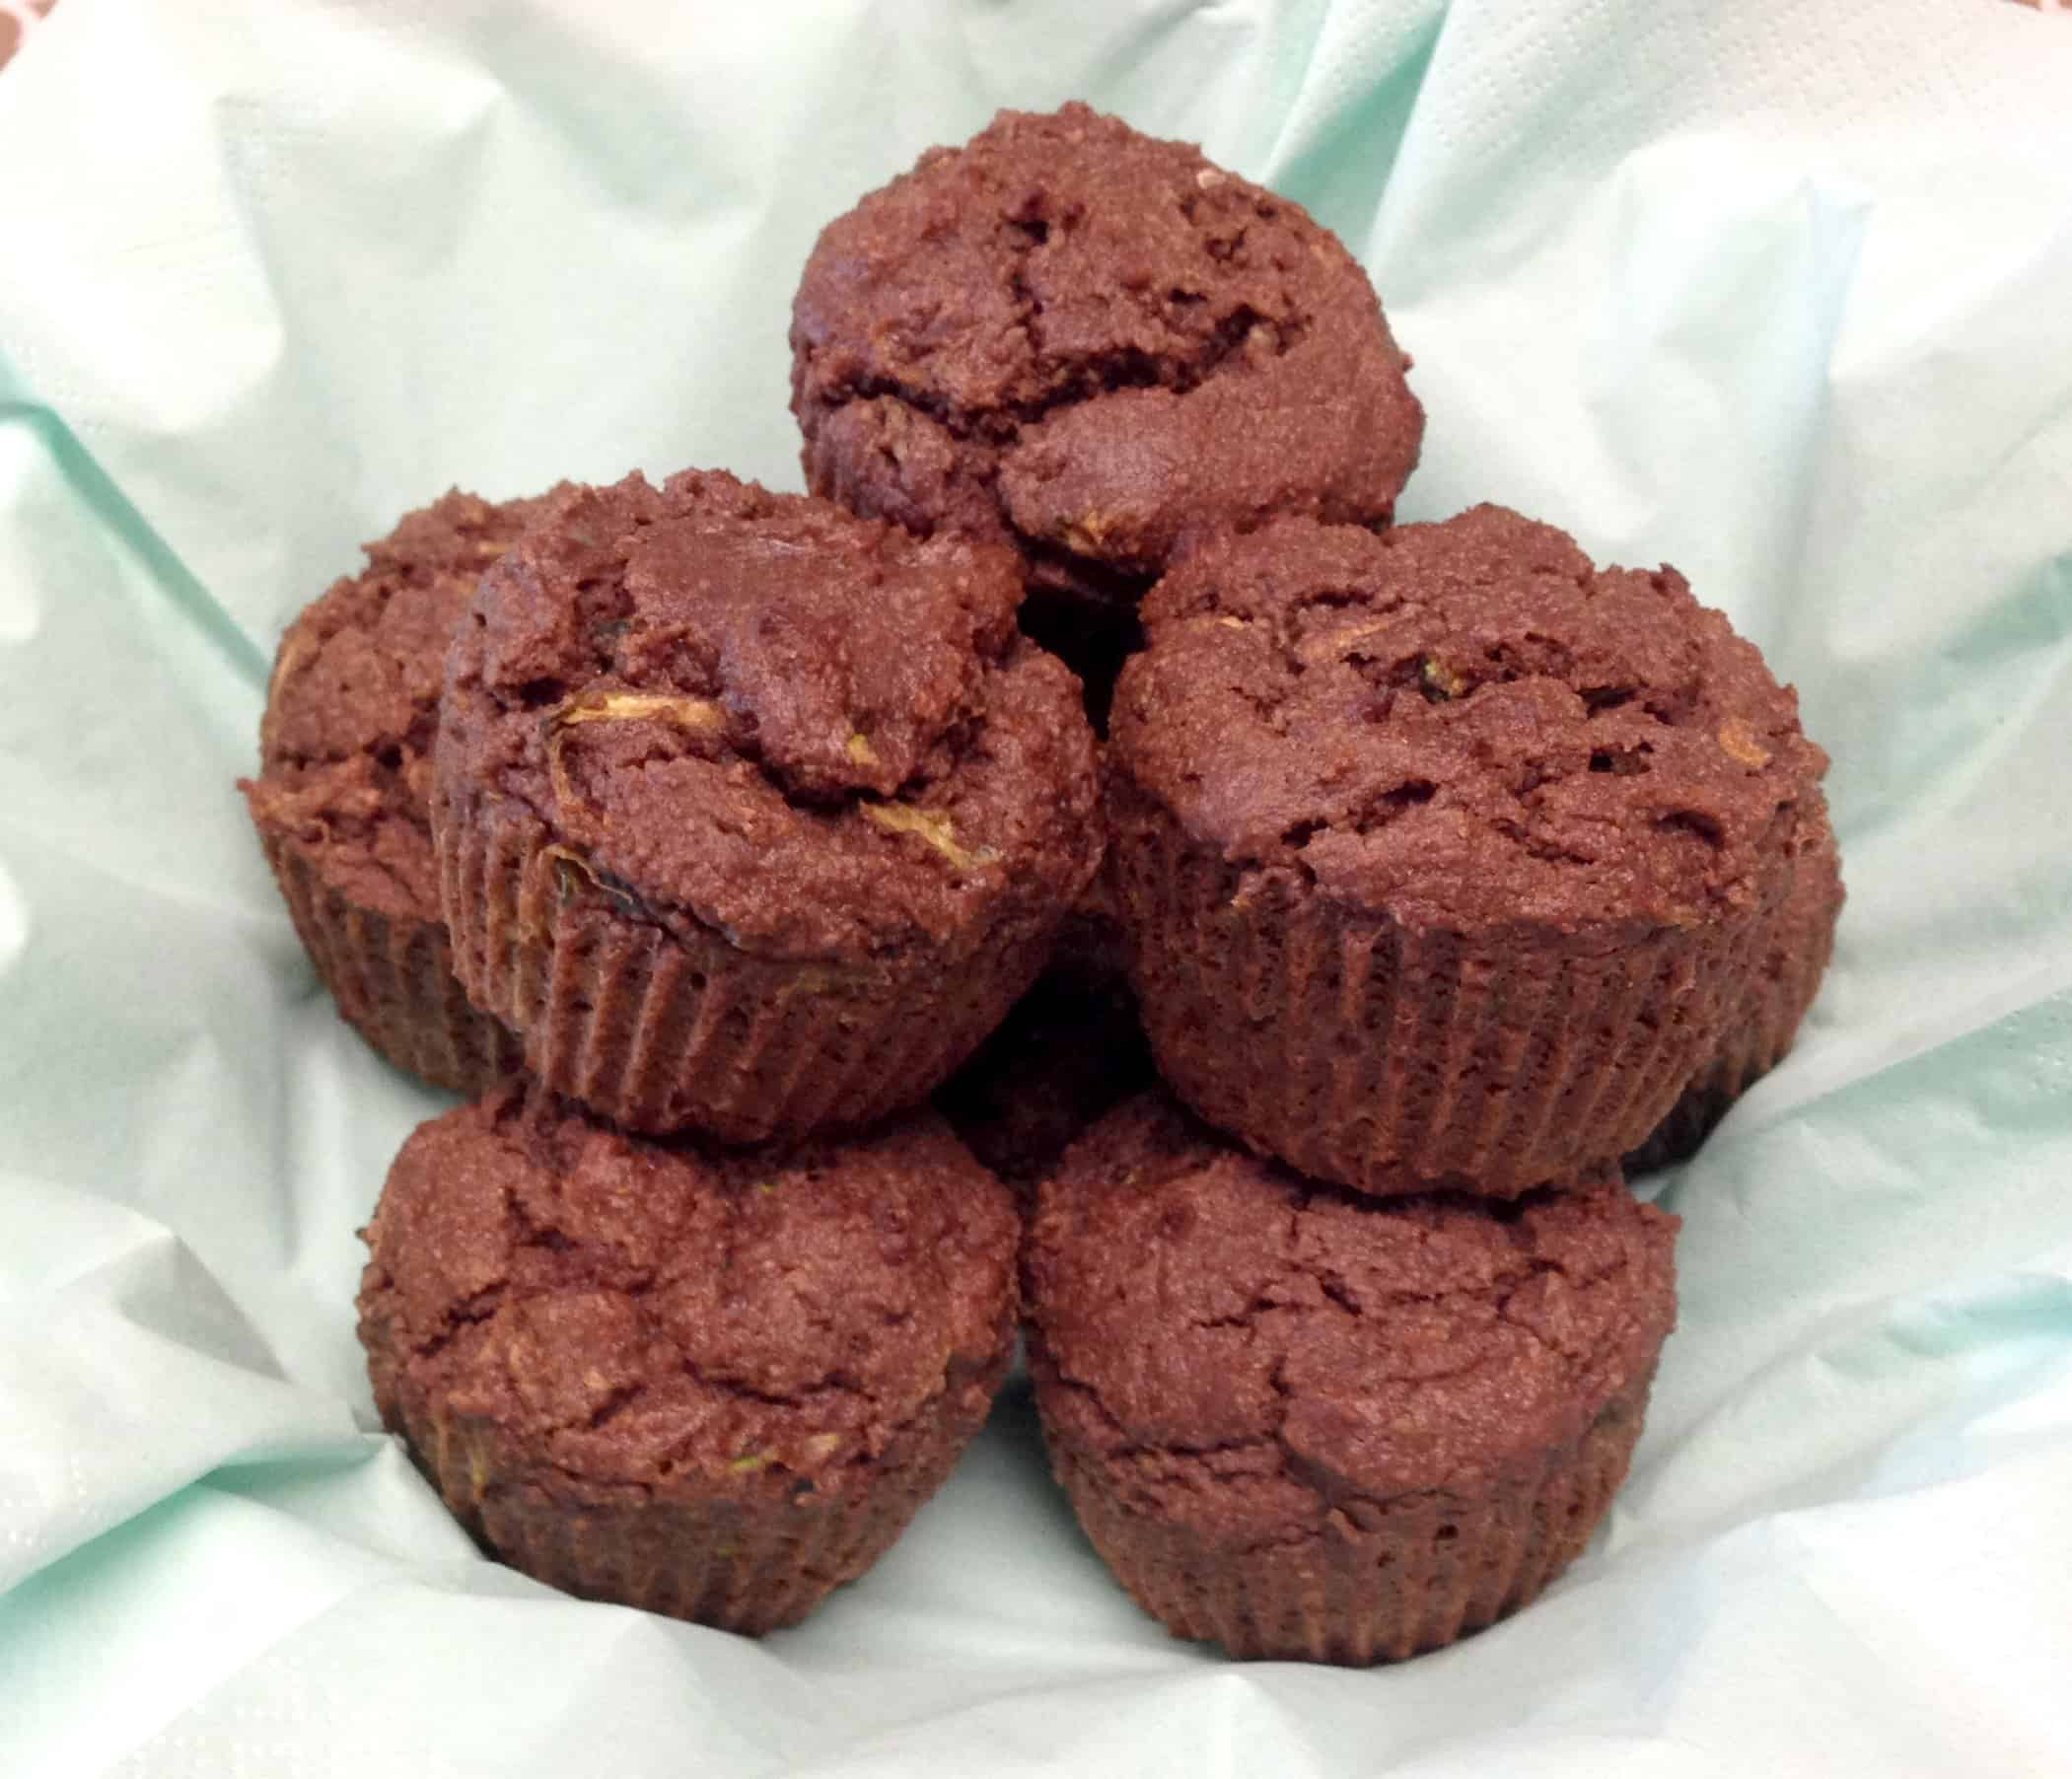 Chocolate Zucchini Muffins - Keto, Low Carb and Gluten Free